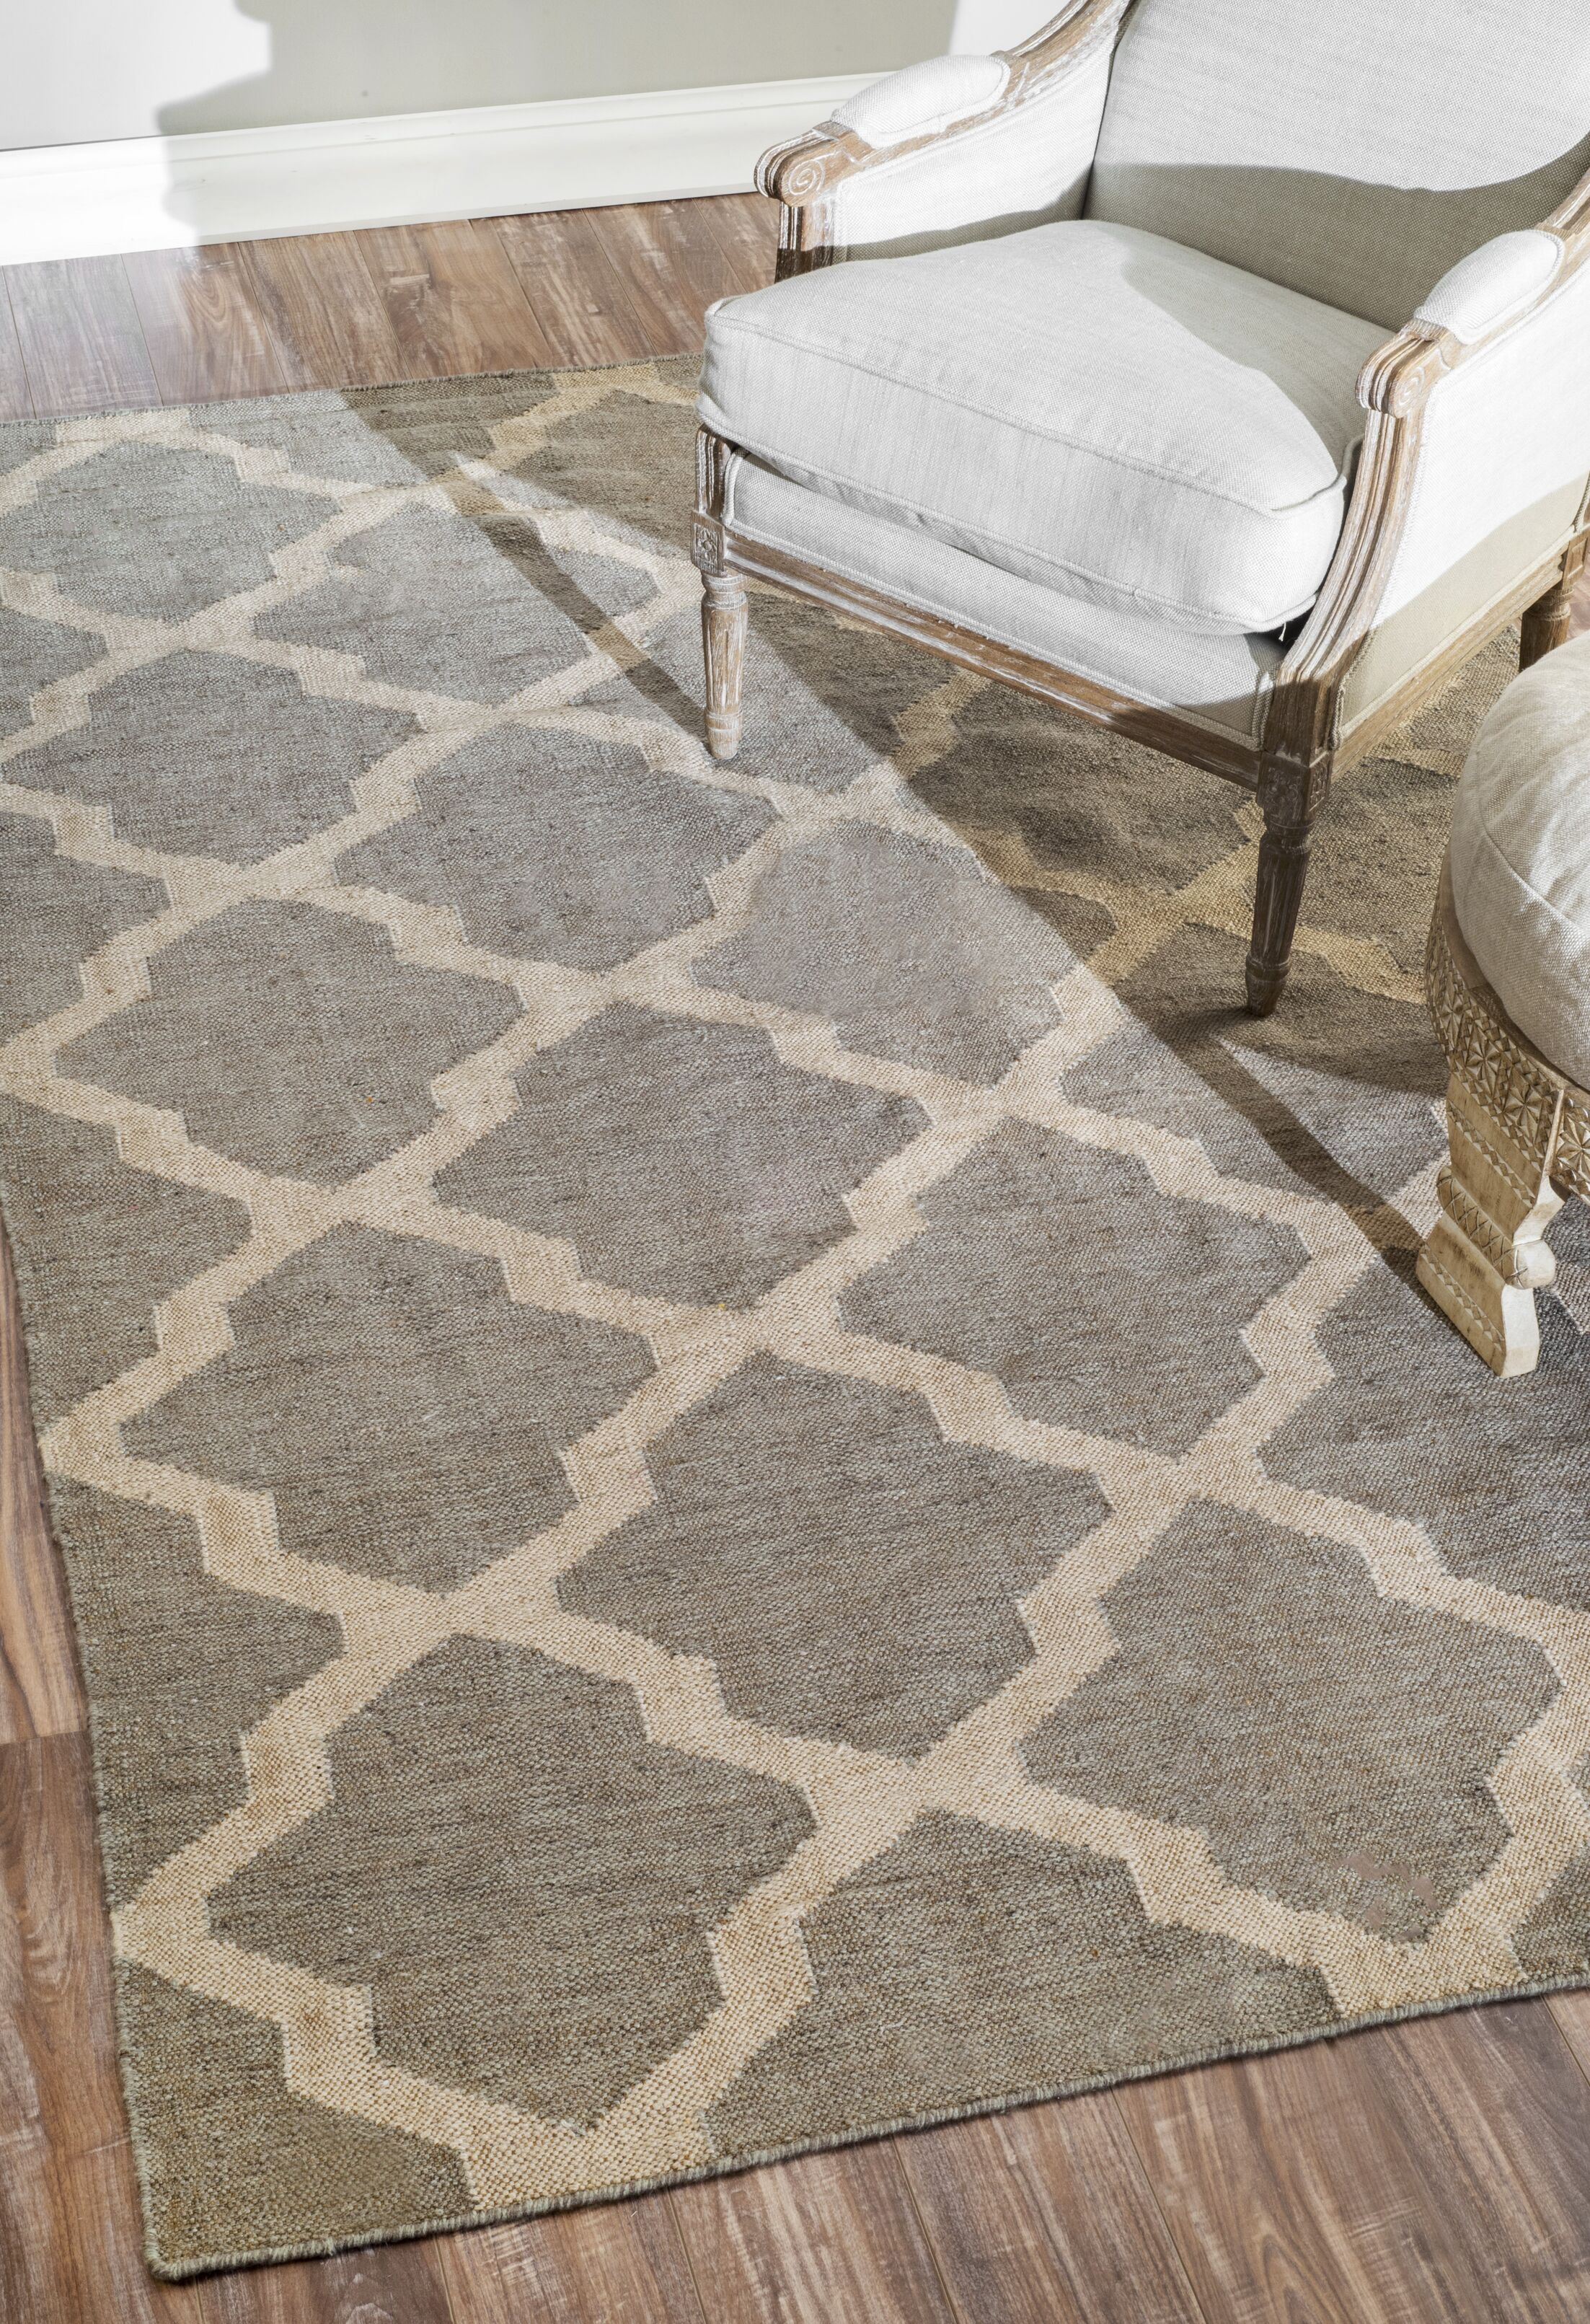 Loucelles Gray Area Rug Rug Size: Rectangle 7'6